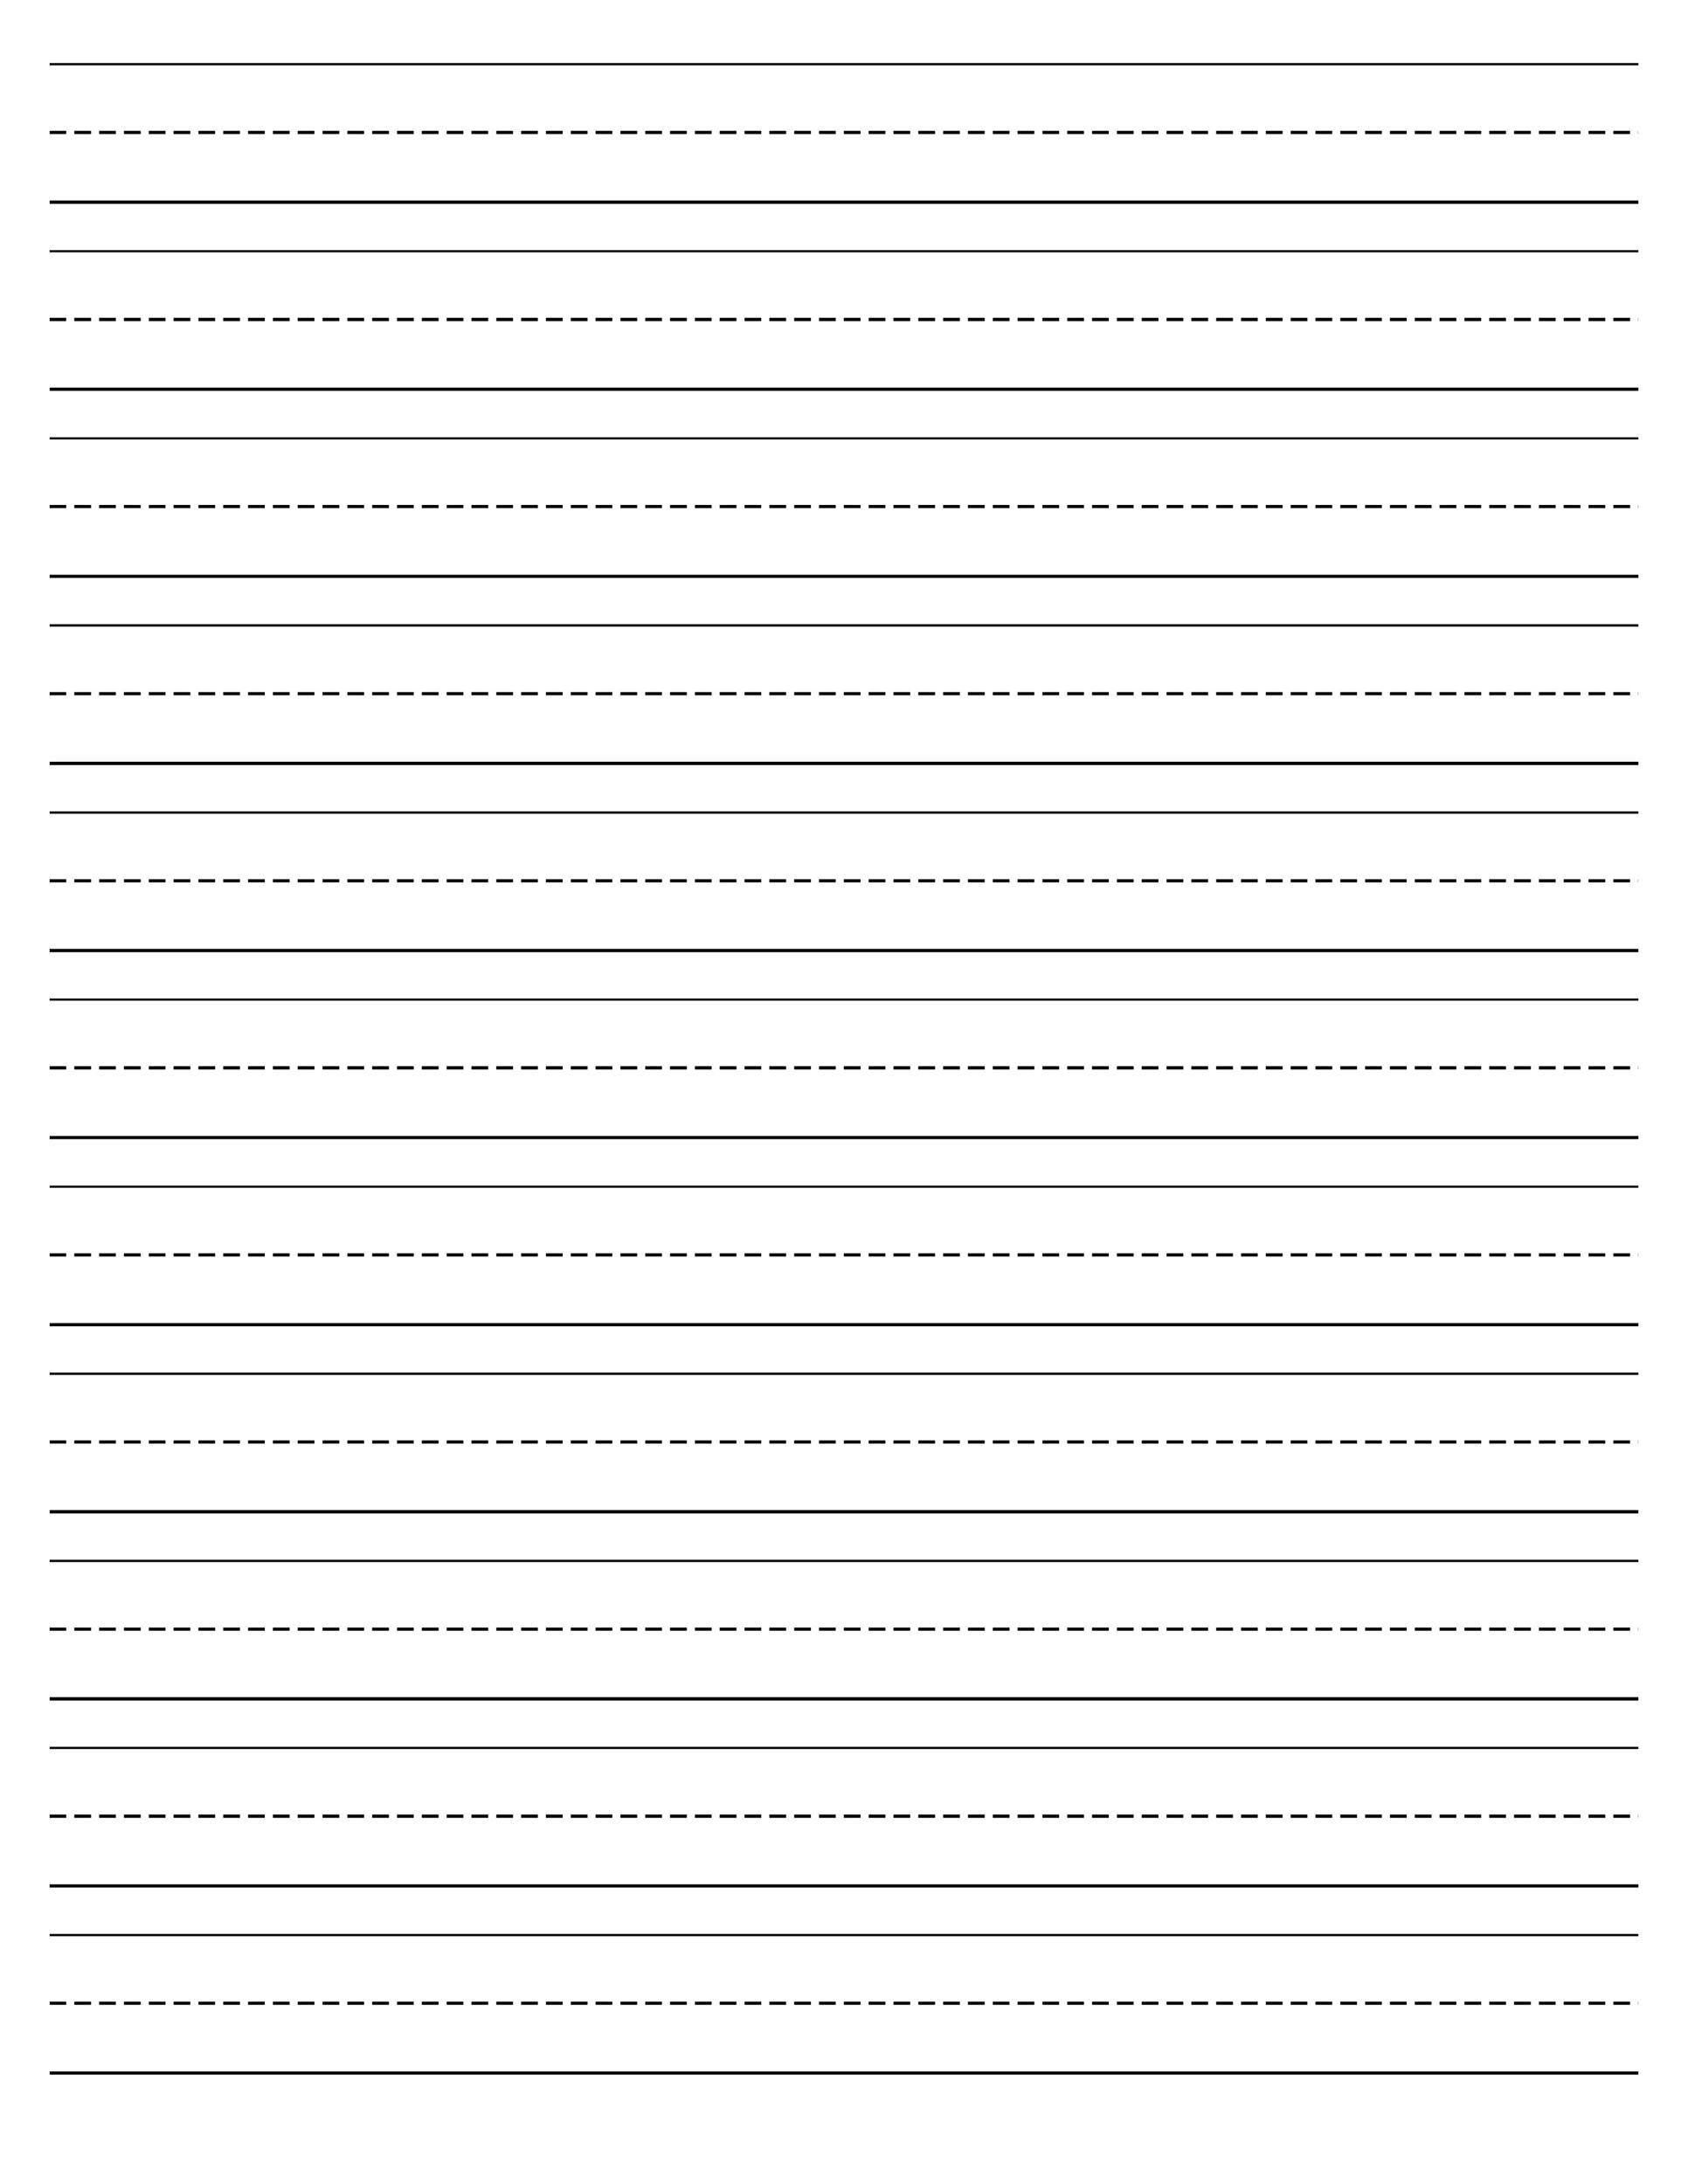 graphic about Printable Paper With Lines known as 32 Printable Included Paper Templates ᐅ Template Lab